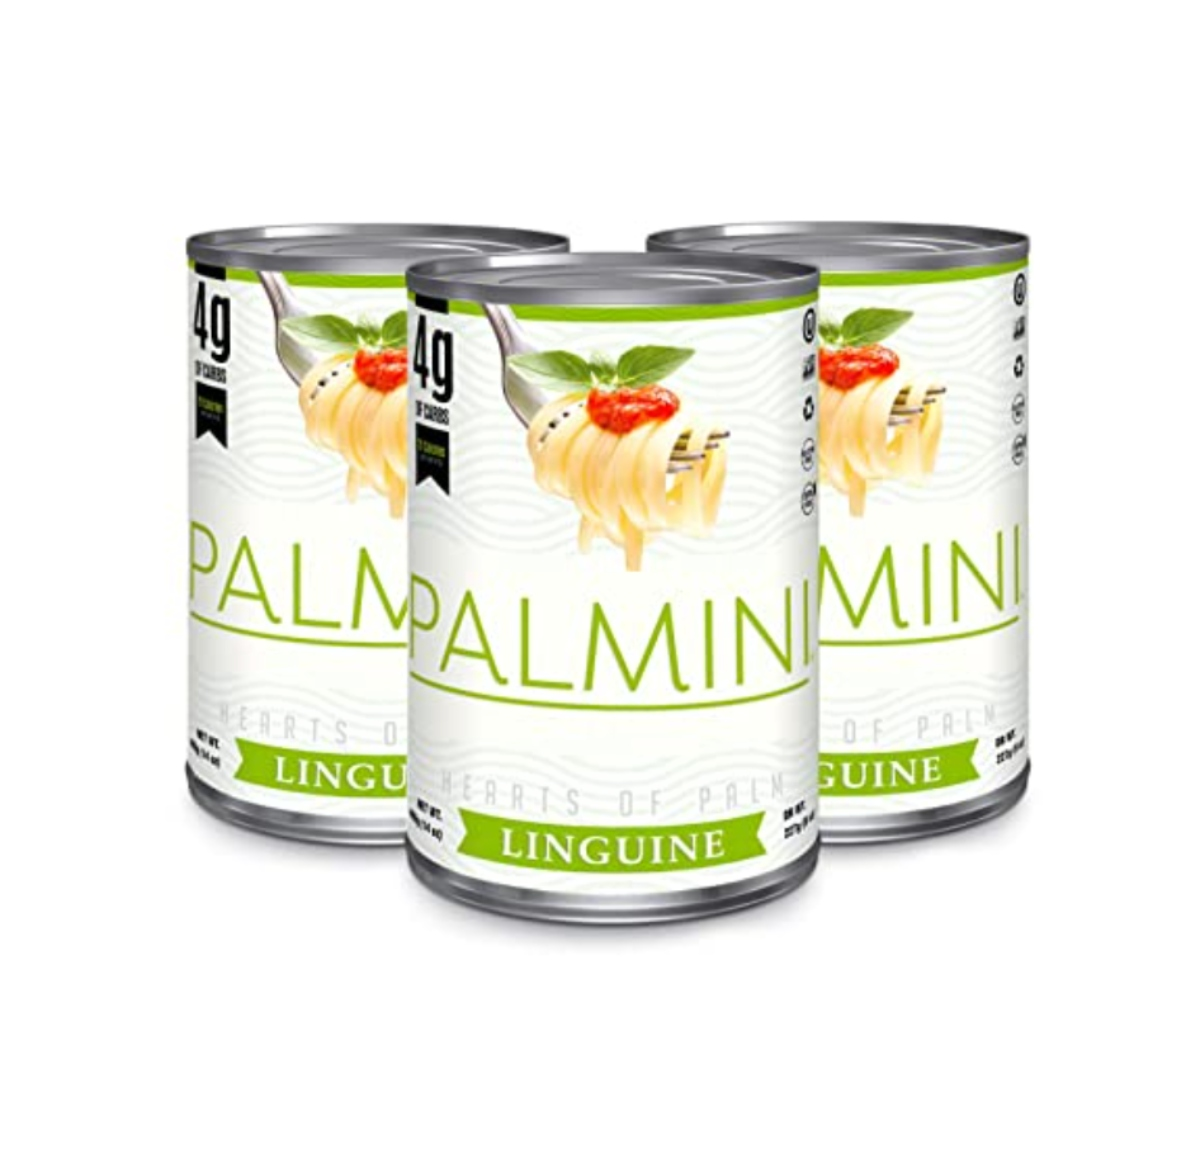 Palmini linguine in cans